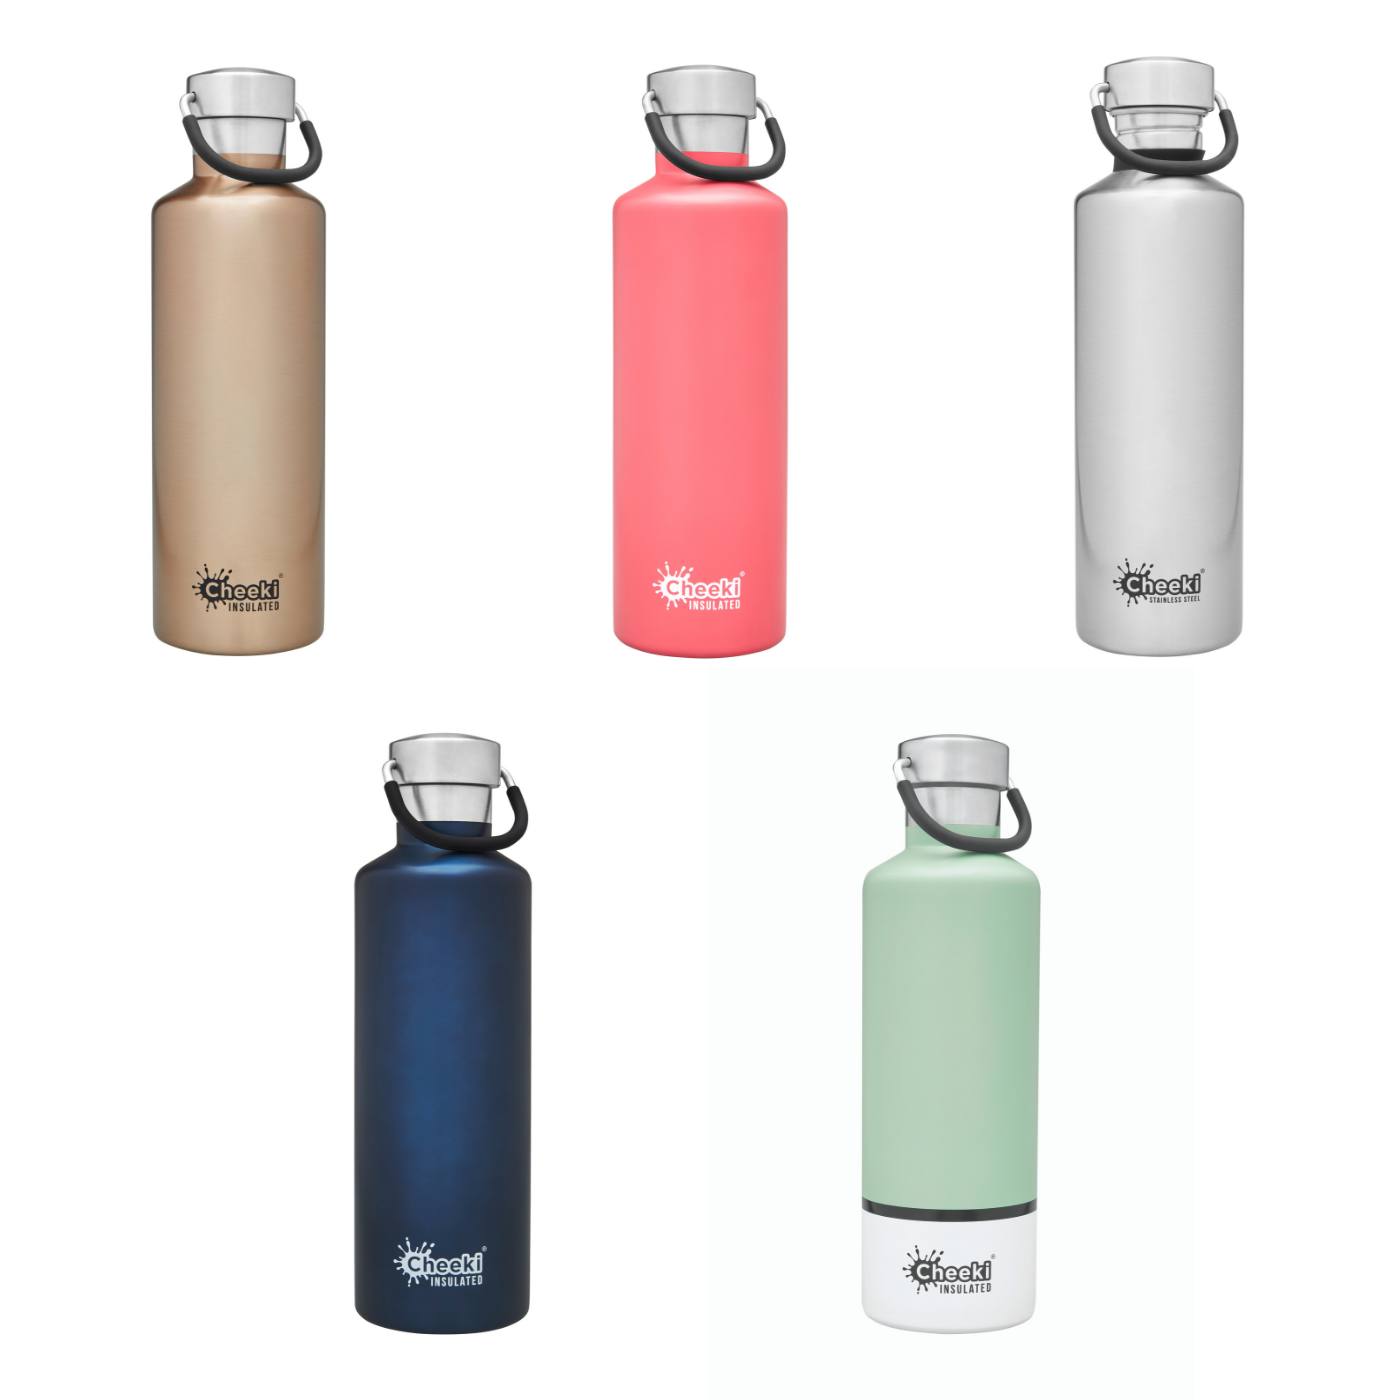 Cheeki Insulated Bottle - 600ml